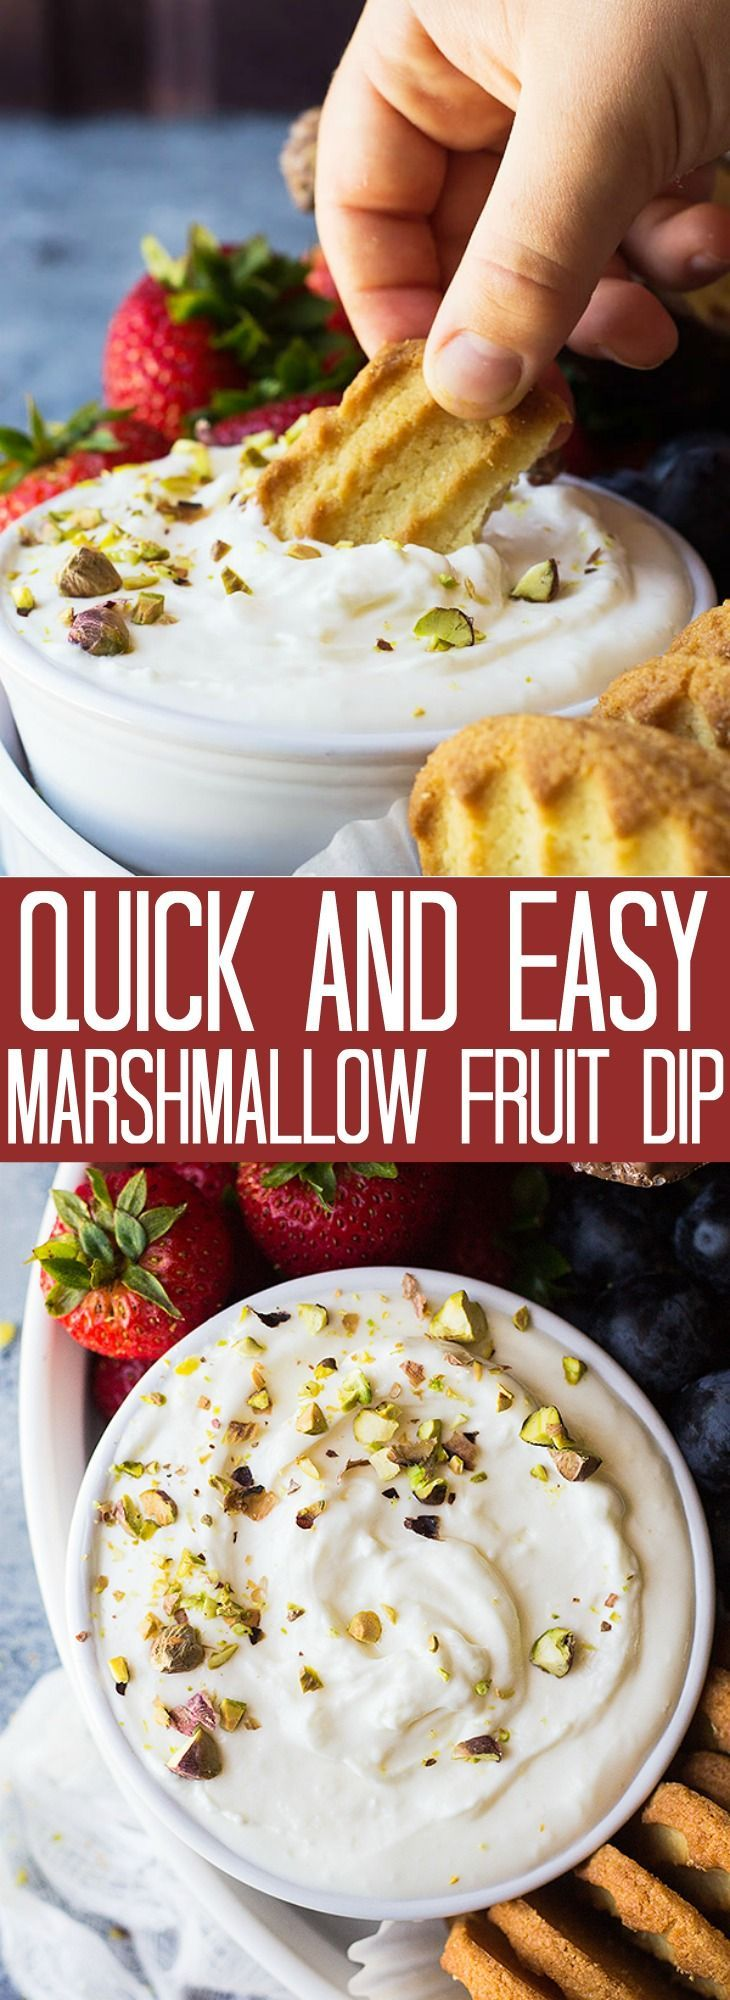 THIS QUICK AND EASY MARSHMALLOW FRUIT DIP IS LIGHT, FLUFFY AND CREAMY! IT GOES GREAT AT PARTIES AND IS PERFECT FOR DIPPING FRUIT!